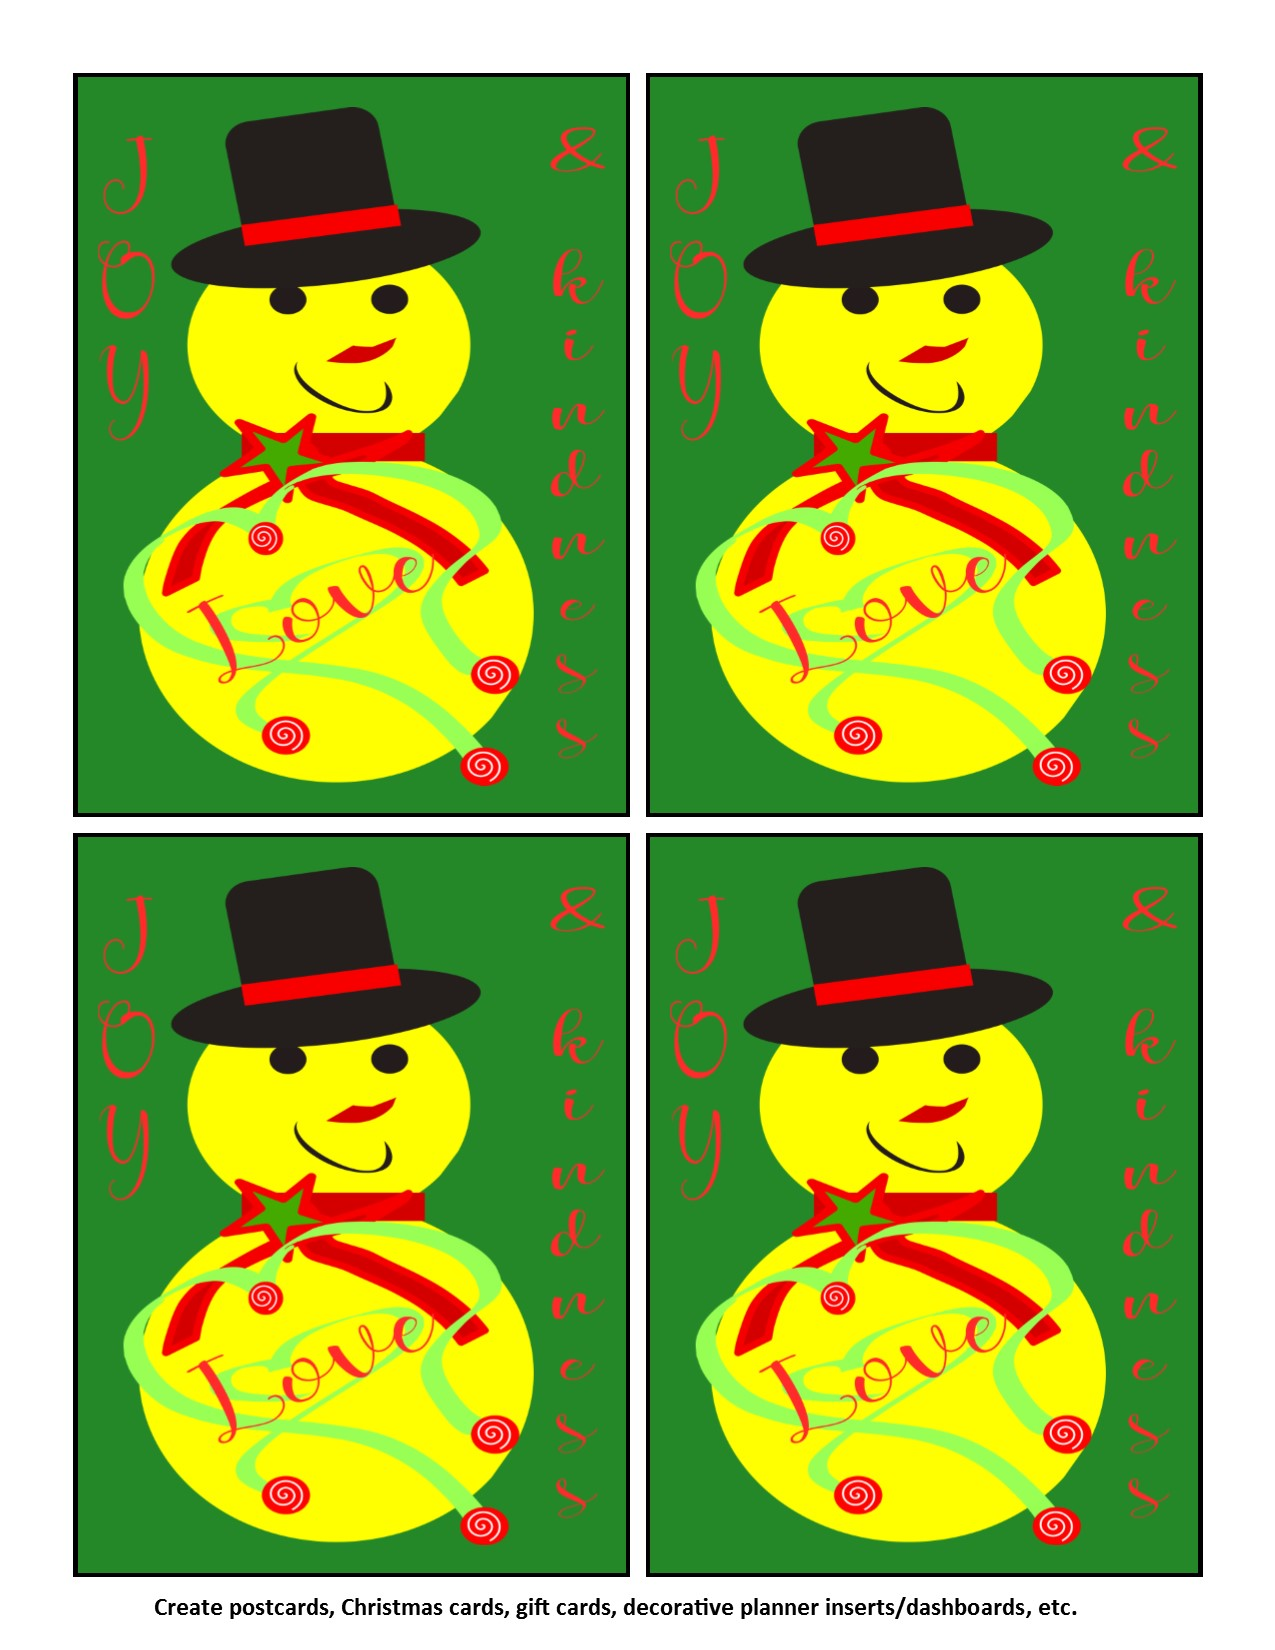 Joy Love Kindness Yellow Snowman Instant Download